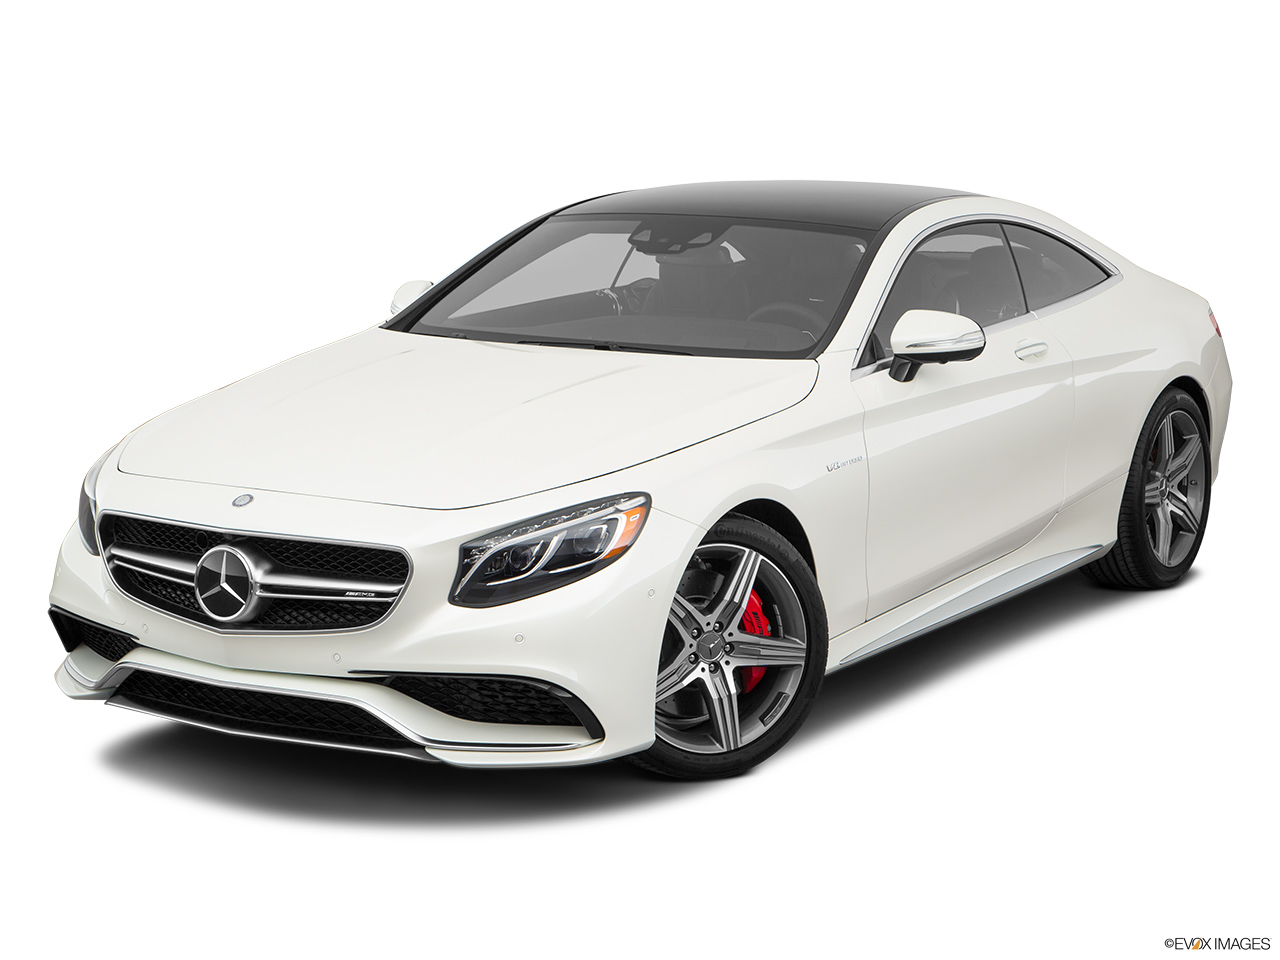 Mercedes benz s 63 amg coupe 2017 brabus 850 in uae new for Mercedes benz slk brabus price